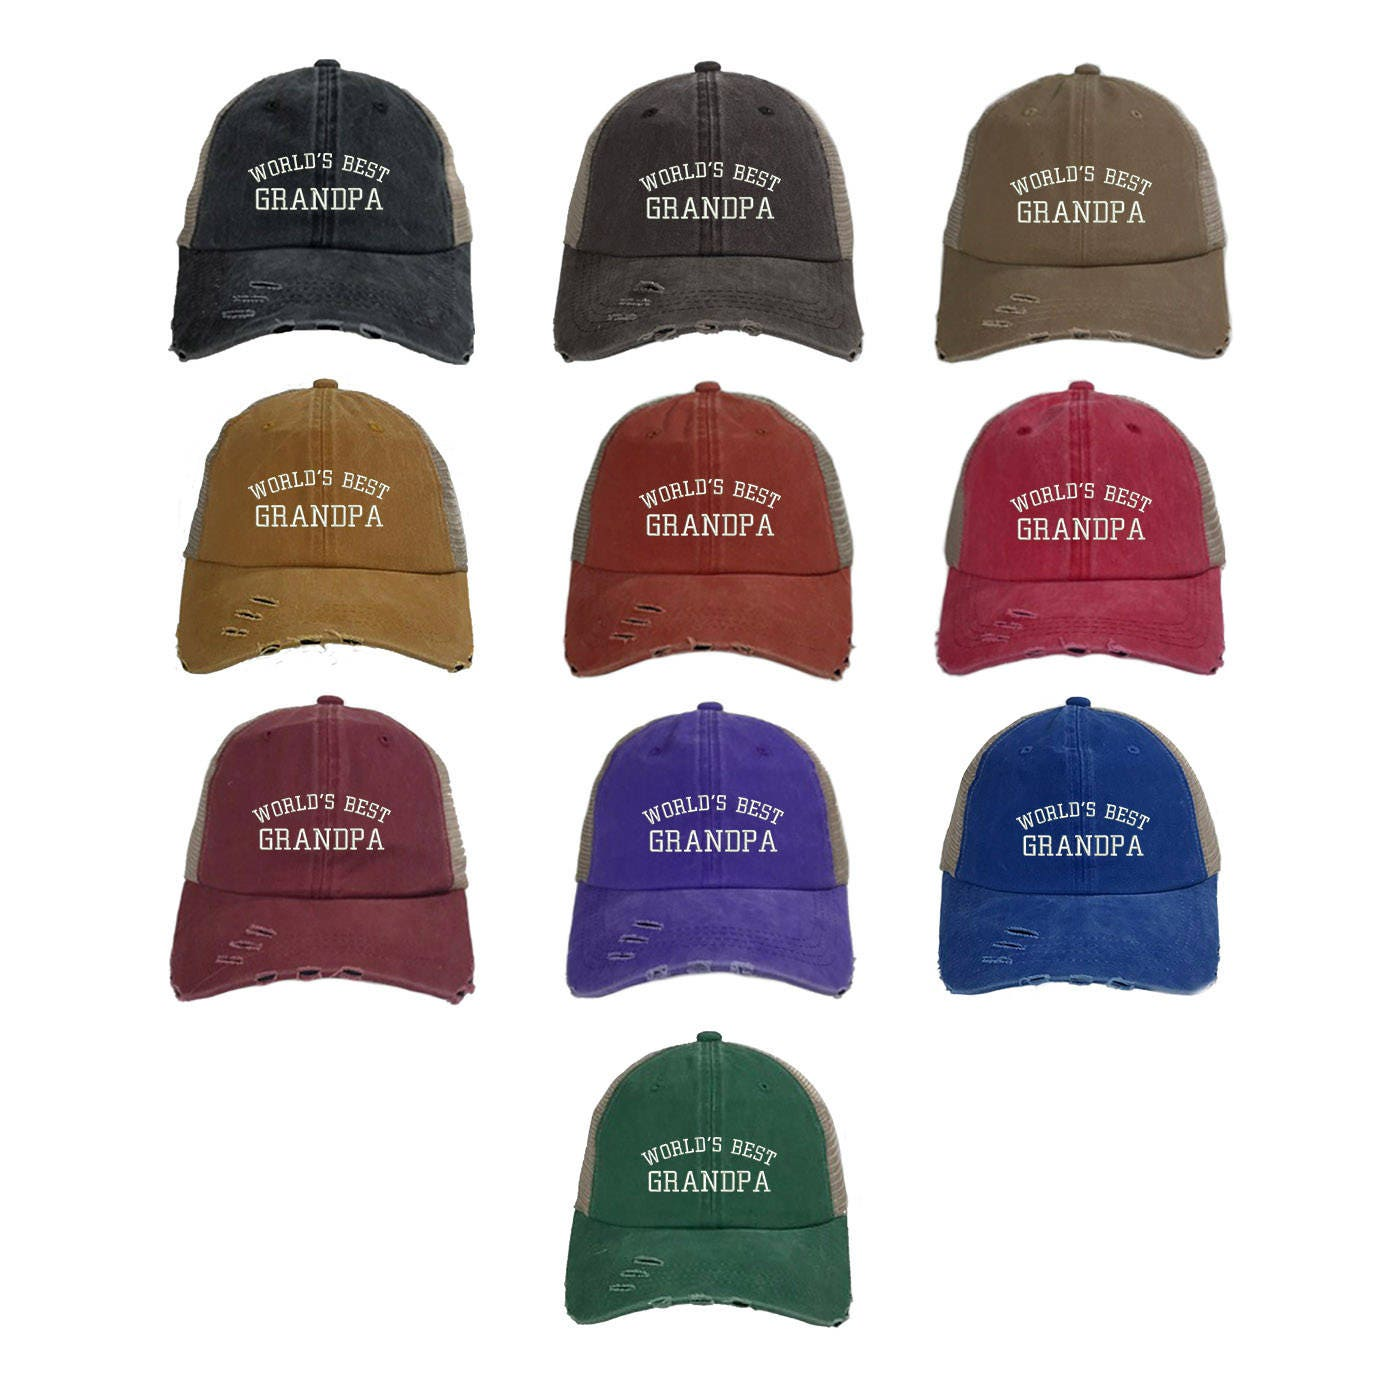 3863ddbce31 ... Grandfather Baseball Caps - Multiple Colors. gallery photo gallery  photo gallery photo ...